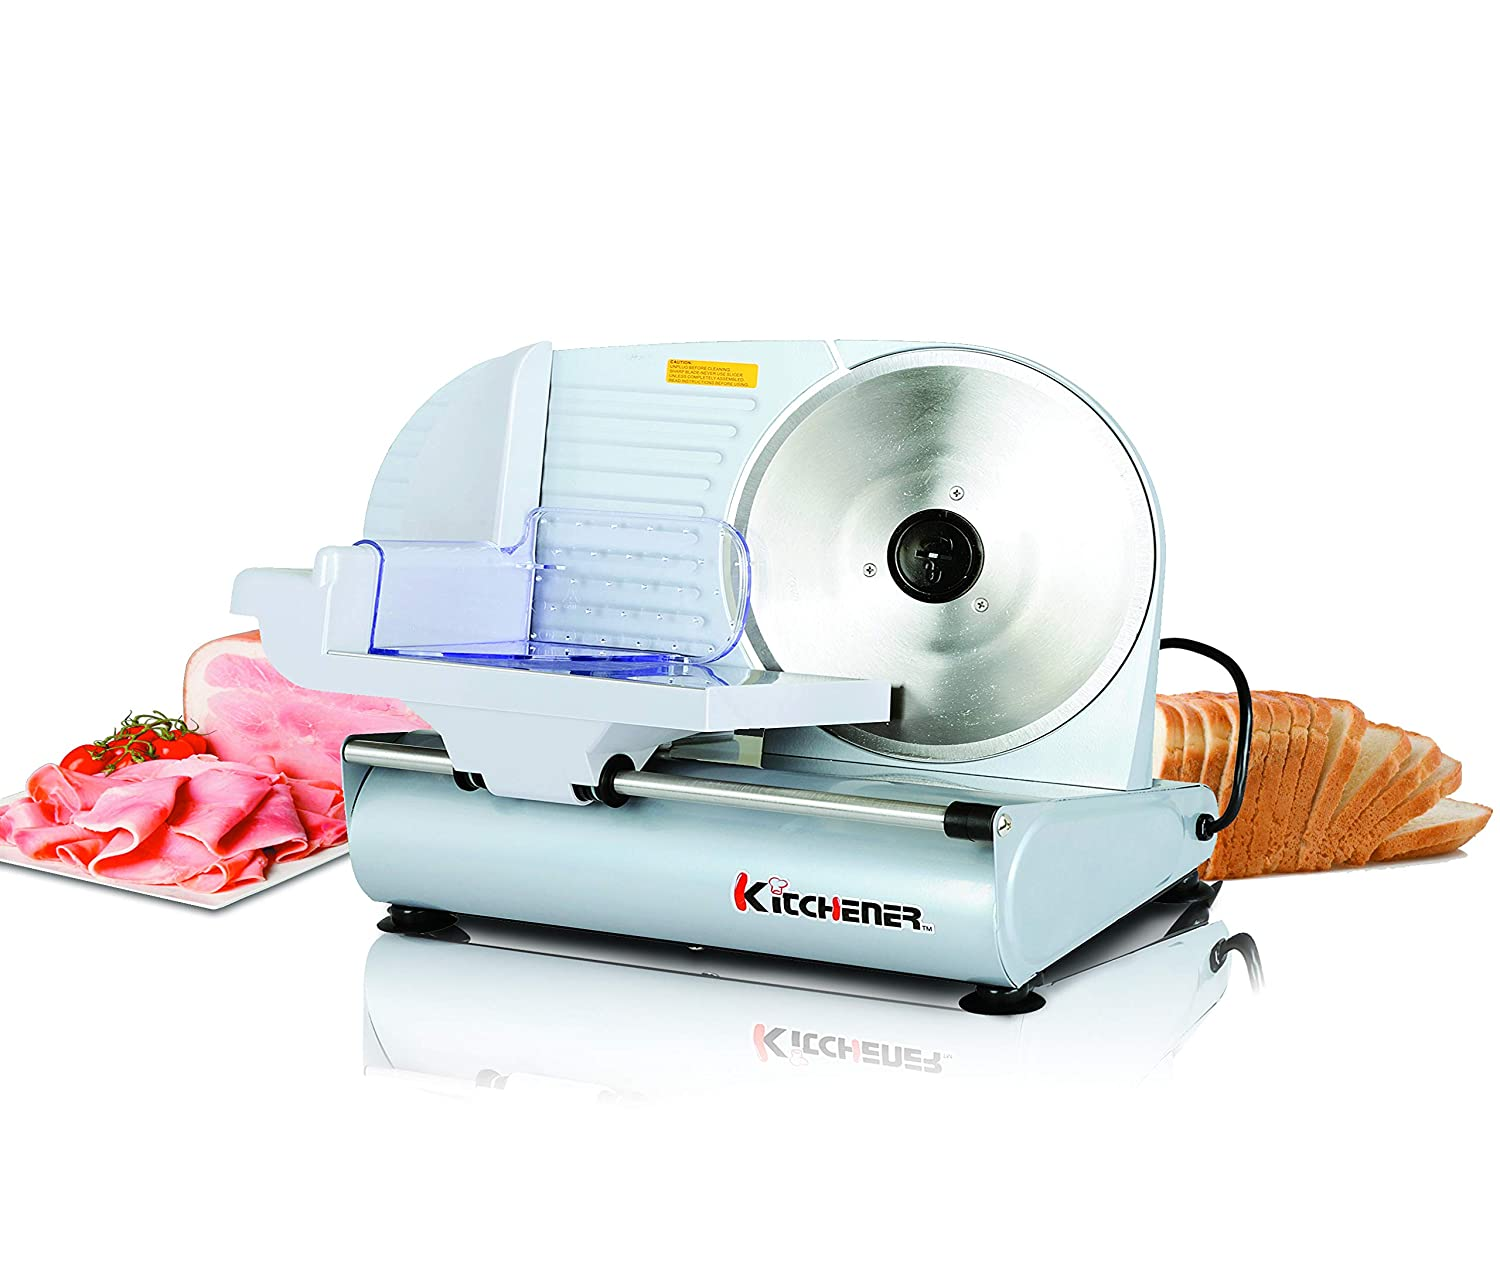 7. Kitchener 9-inch Professional Electric Meat